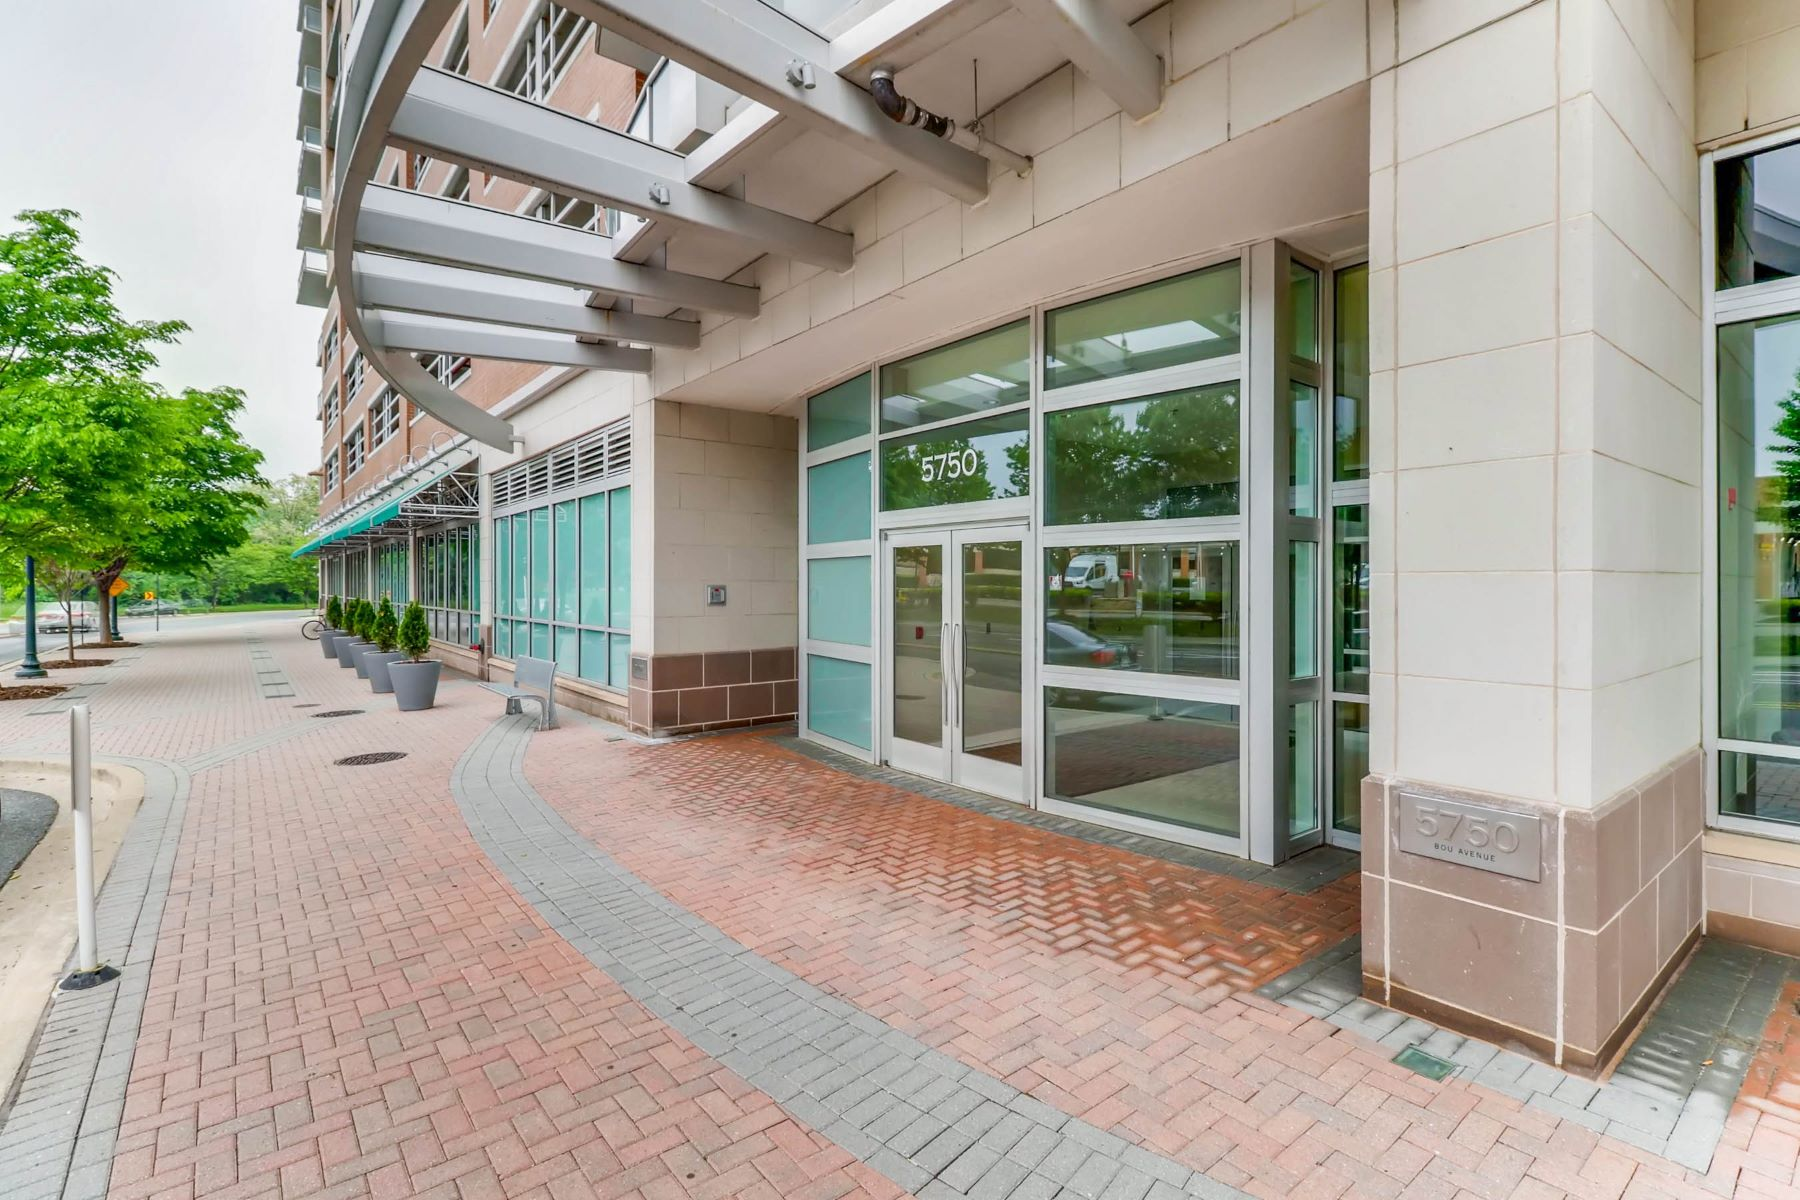 Condominiums for Sale at Midtown Bethesda North Condominiums 5750 Bou Avenue #718 Rockville, Maryland 20852 United States